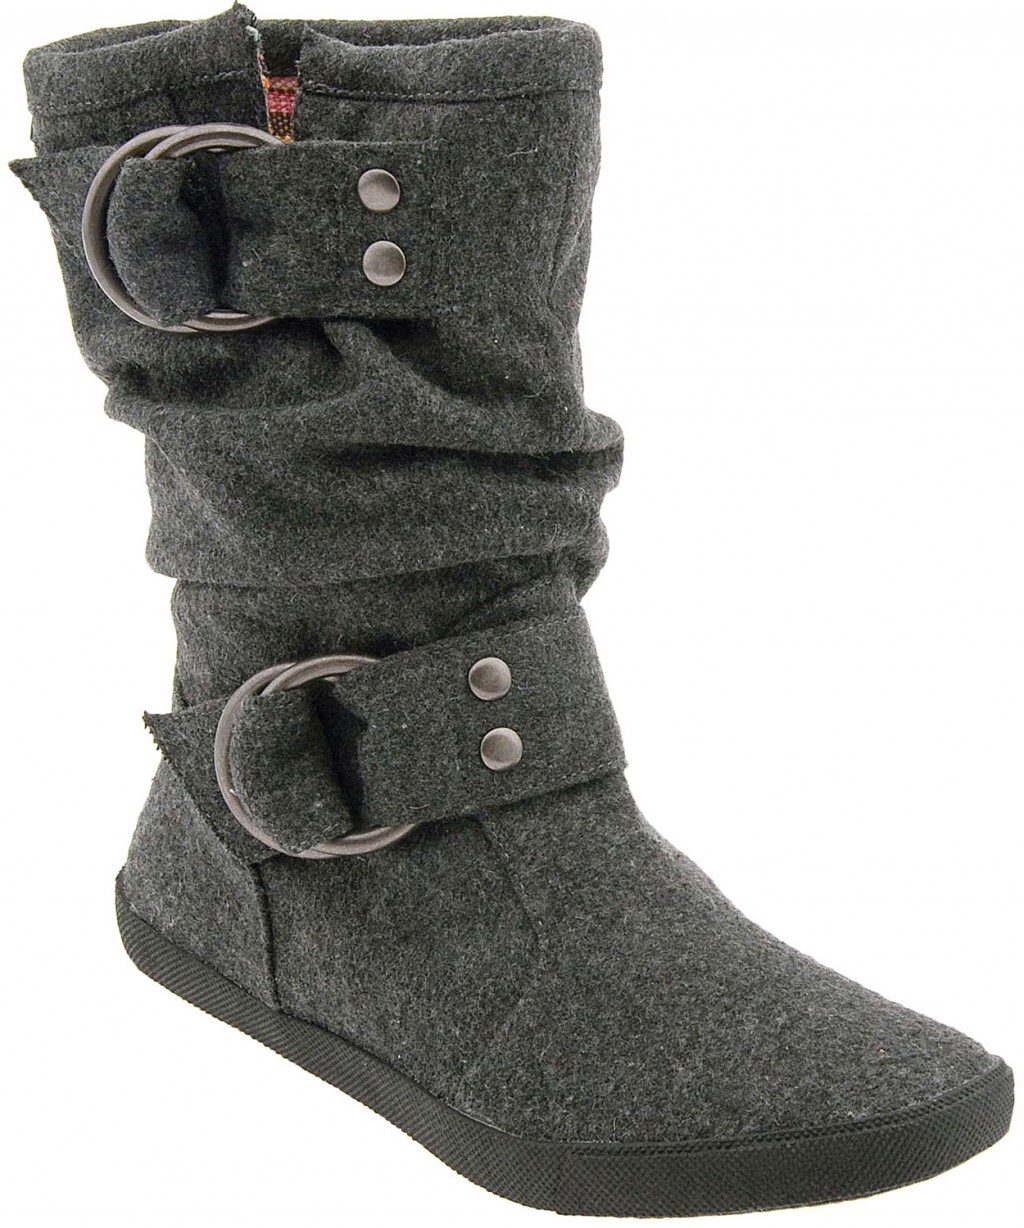 Charming Winter Boots Product Picture in Shoes